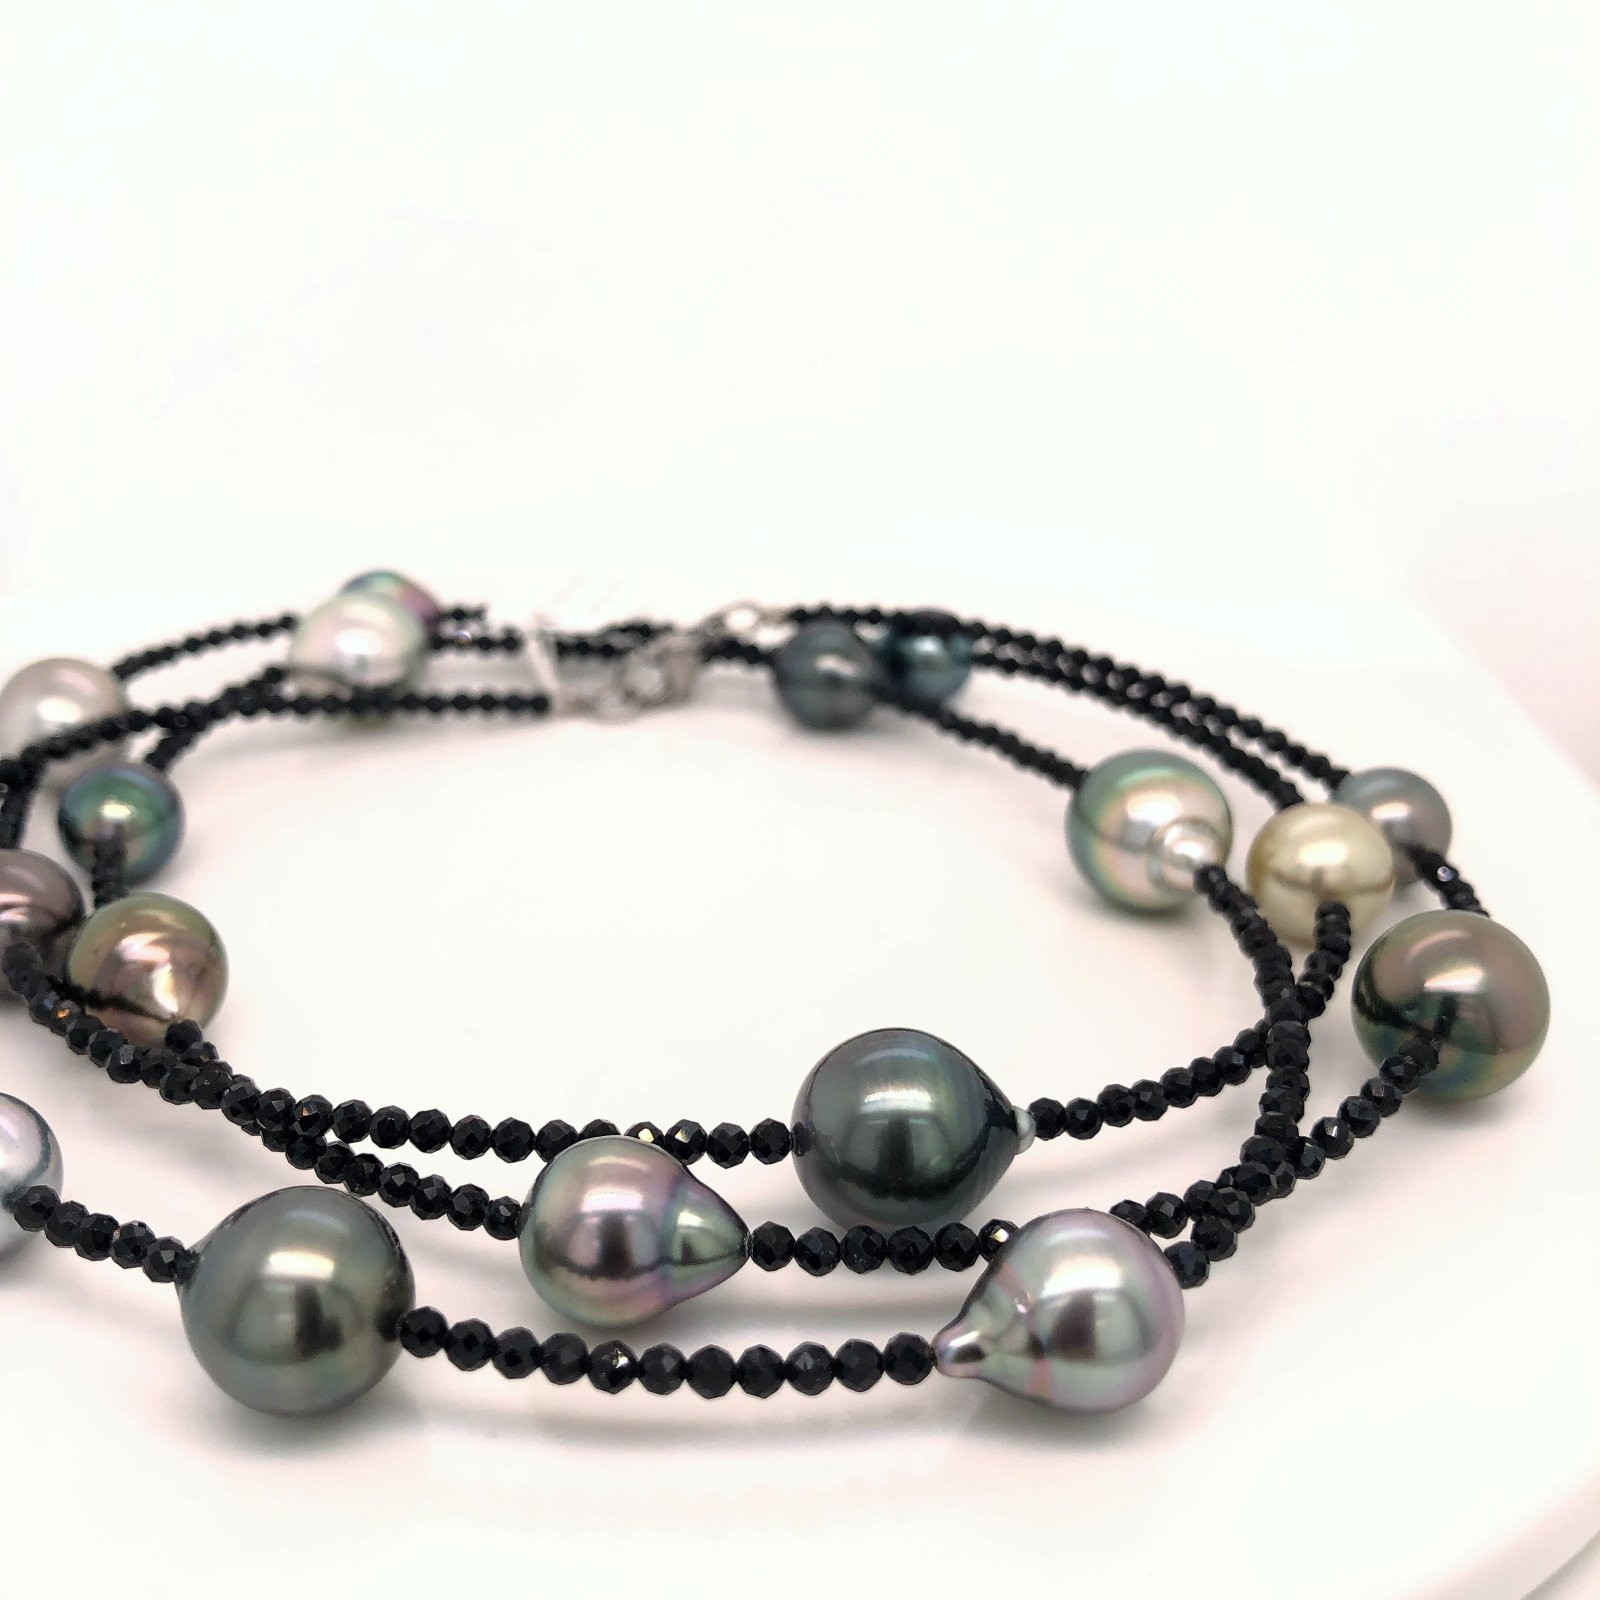 28 Tahitian Pearl & Black Spinel Bead Necklace